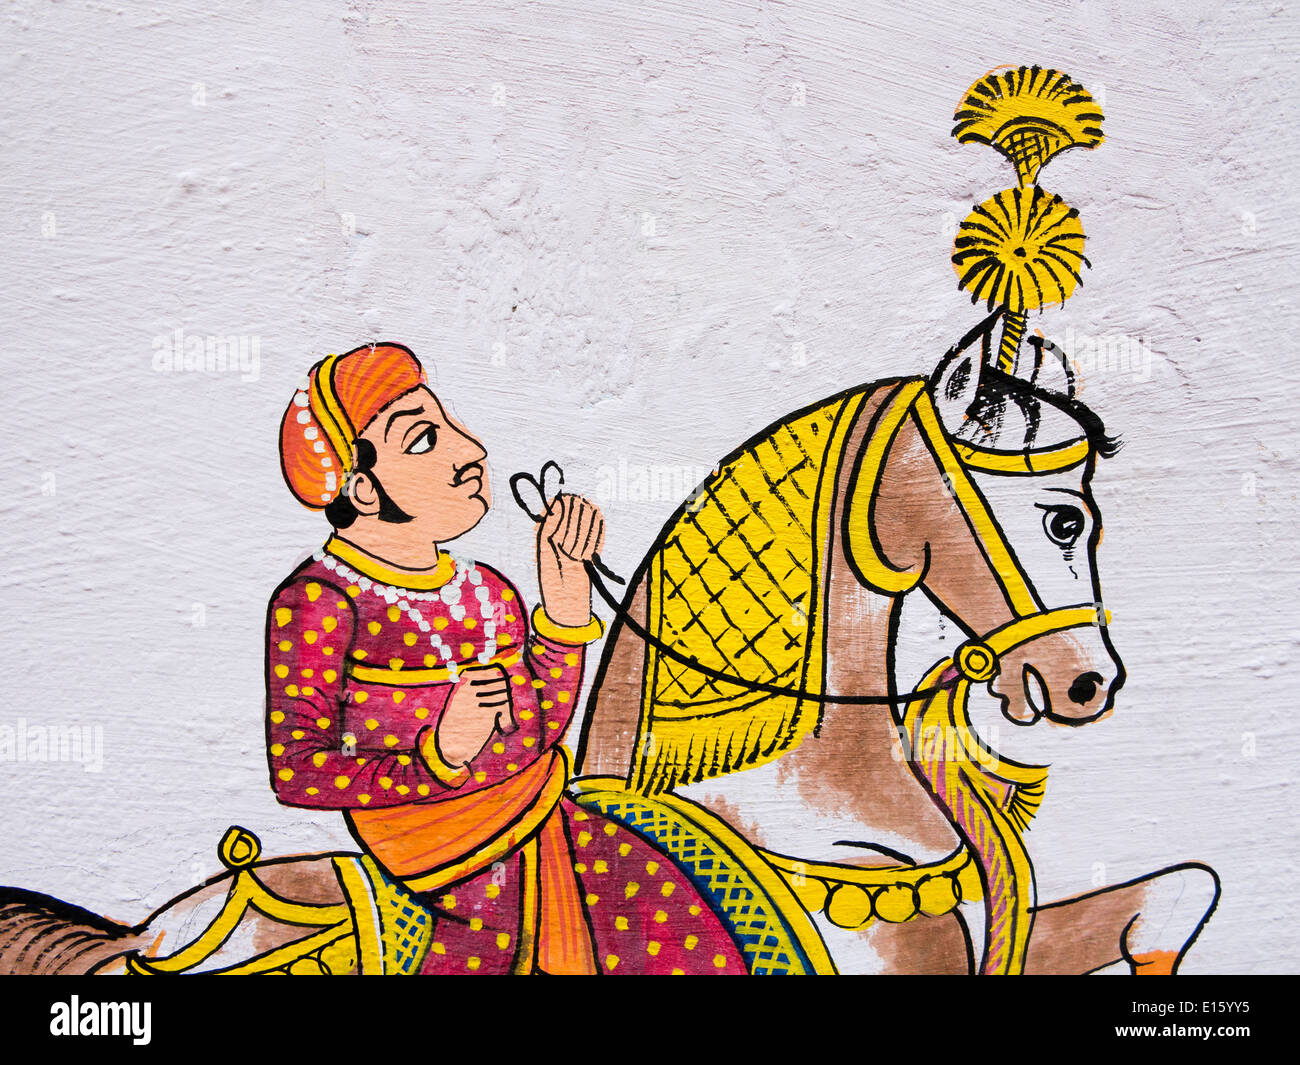 India Rajasthan Udaipur Traditional Wall Painting Of Rajput Man On Stock Photo Alamy